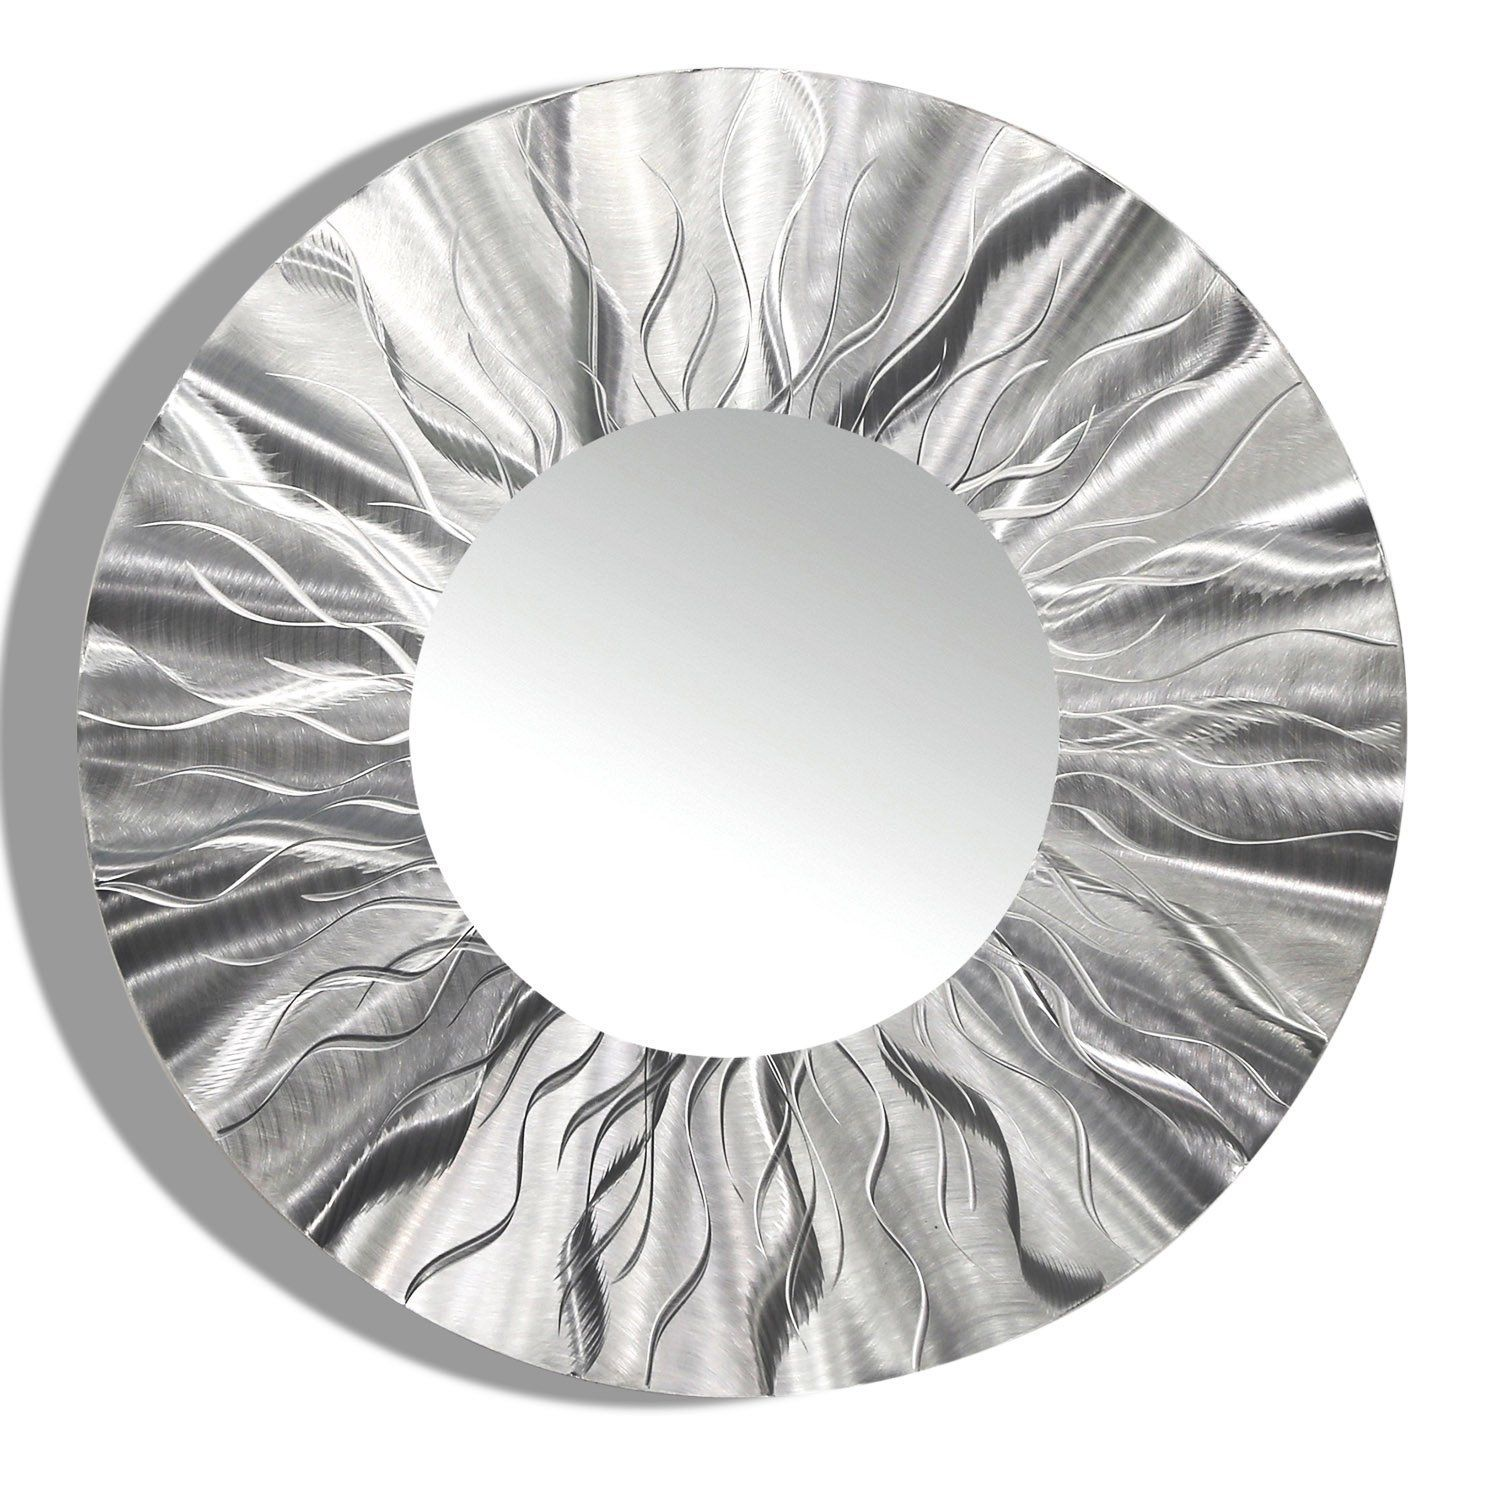 Large Round Silver Modern Metal Wall Art Contemporary Wall Mirror